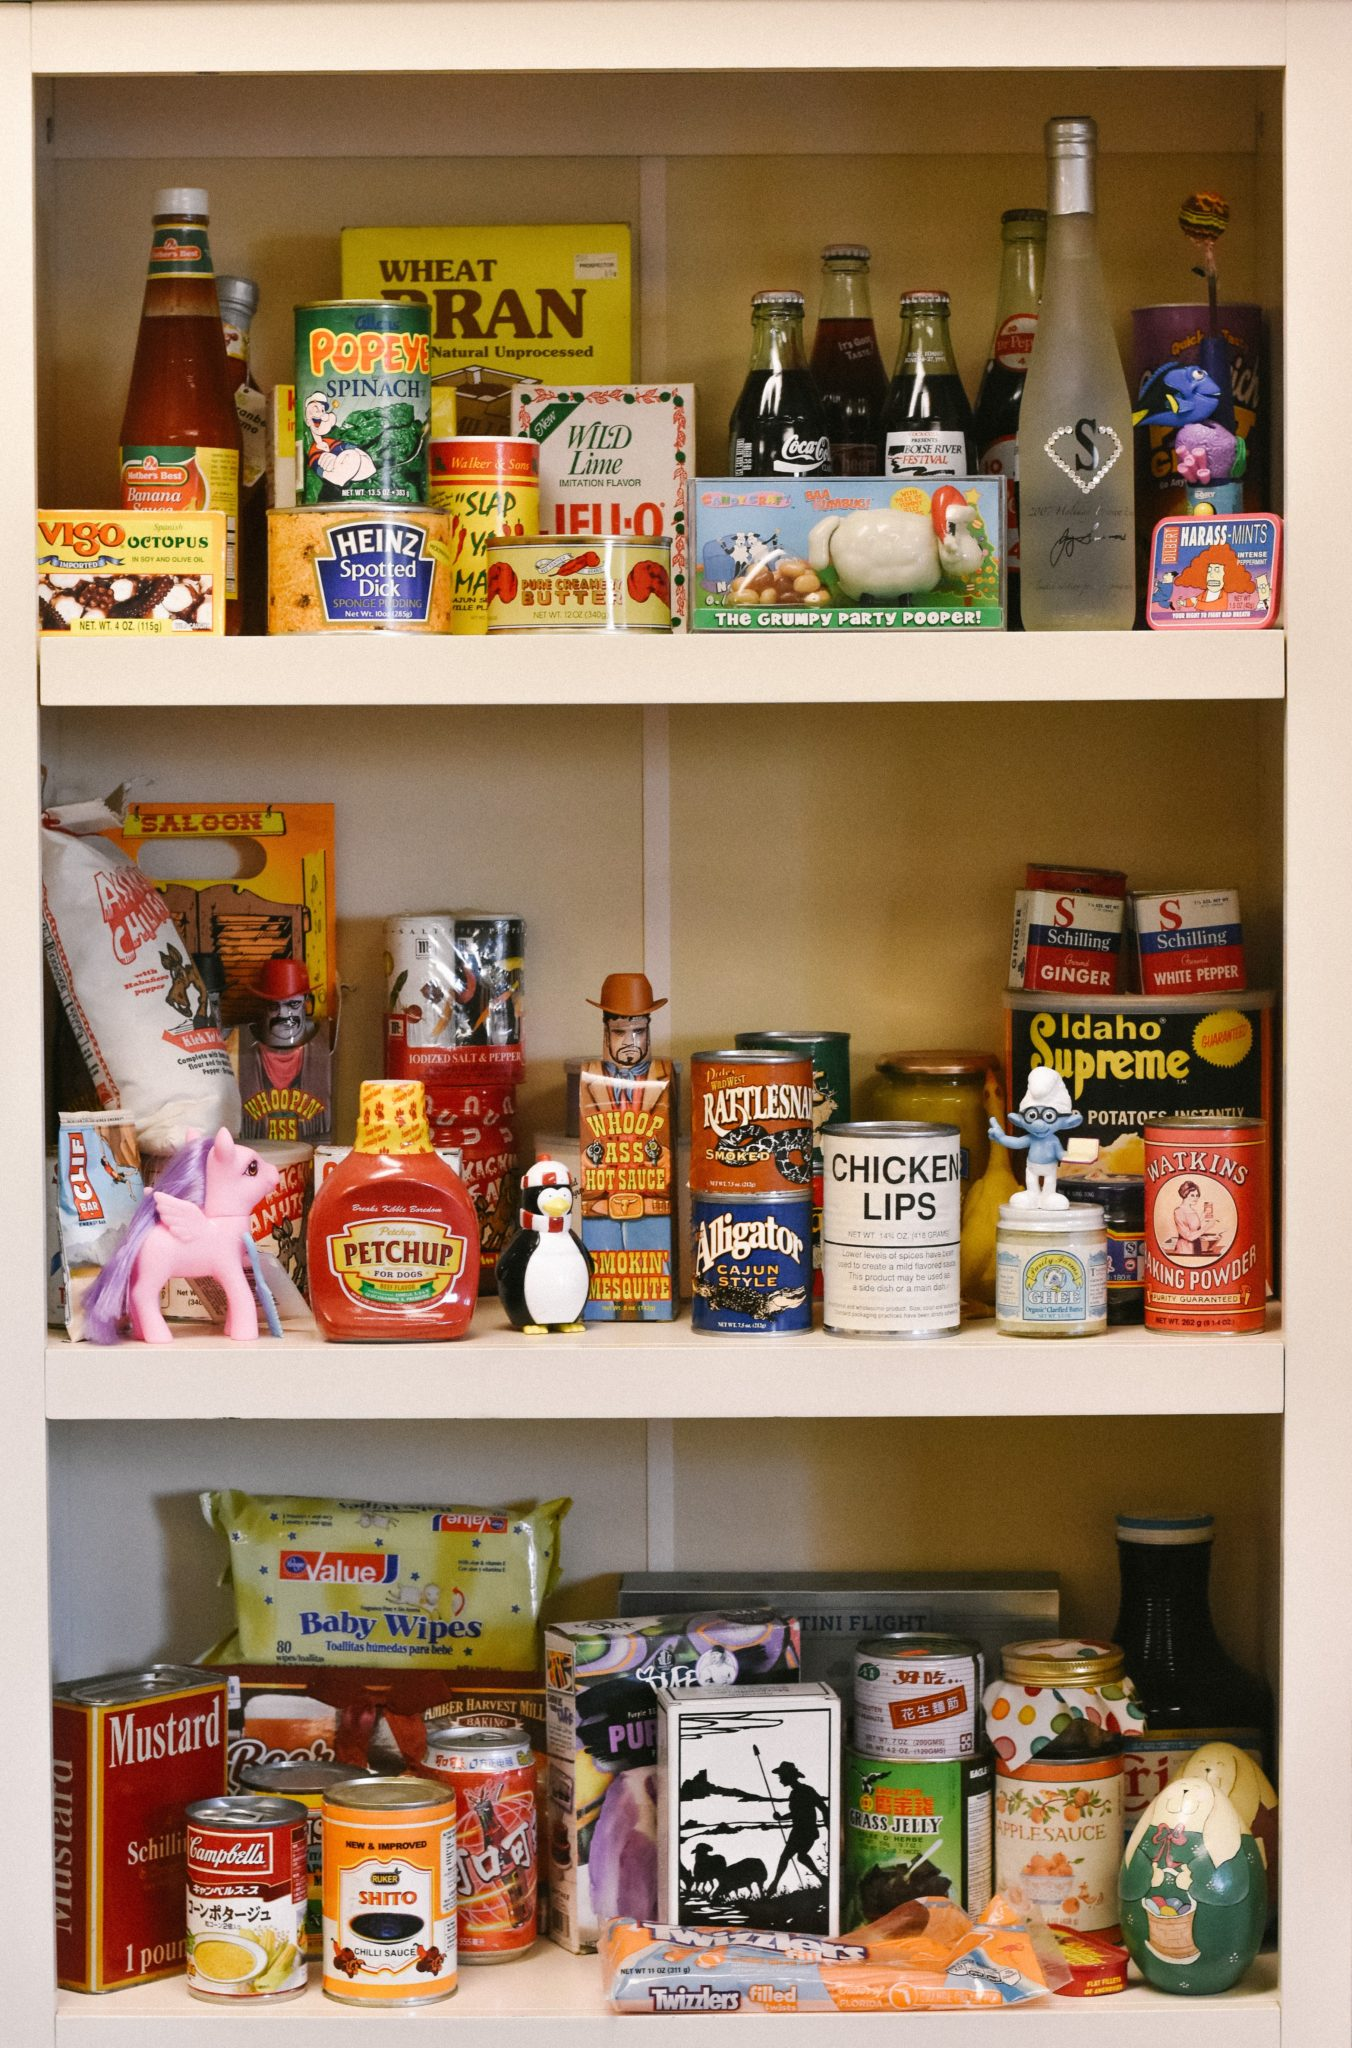 a stocked pantry representing a trigger for eating emotionally when stressed